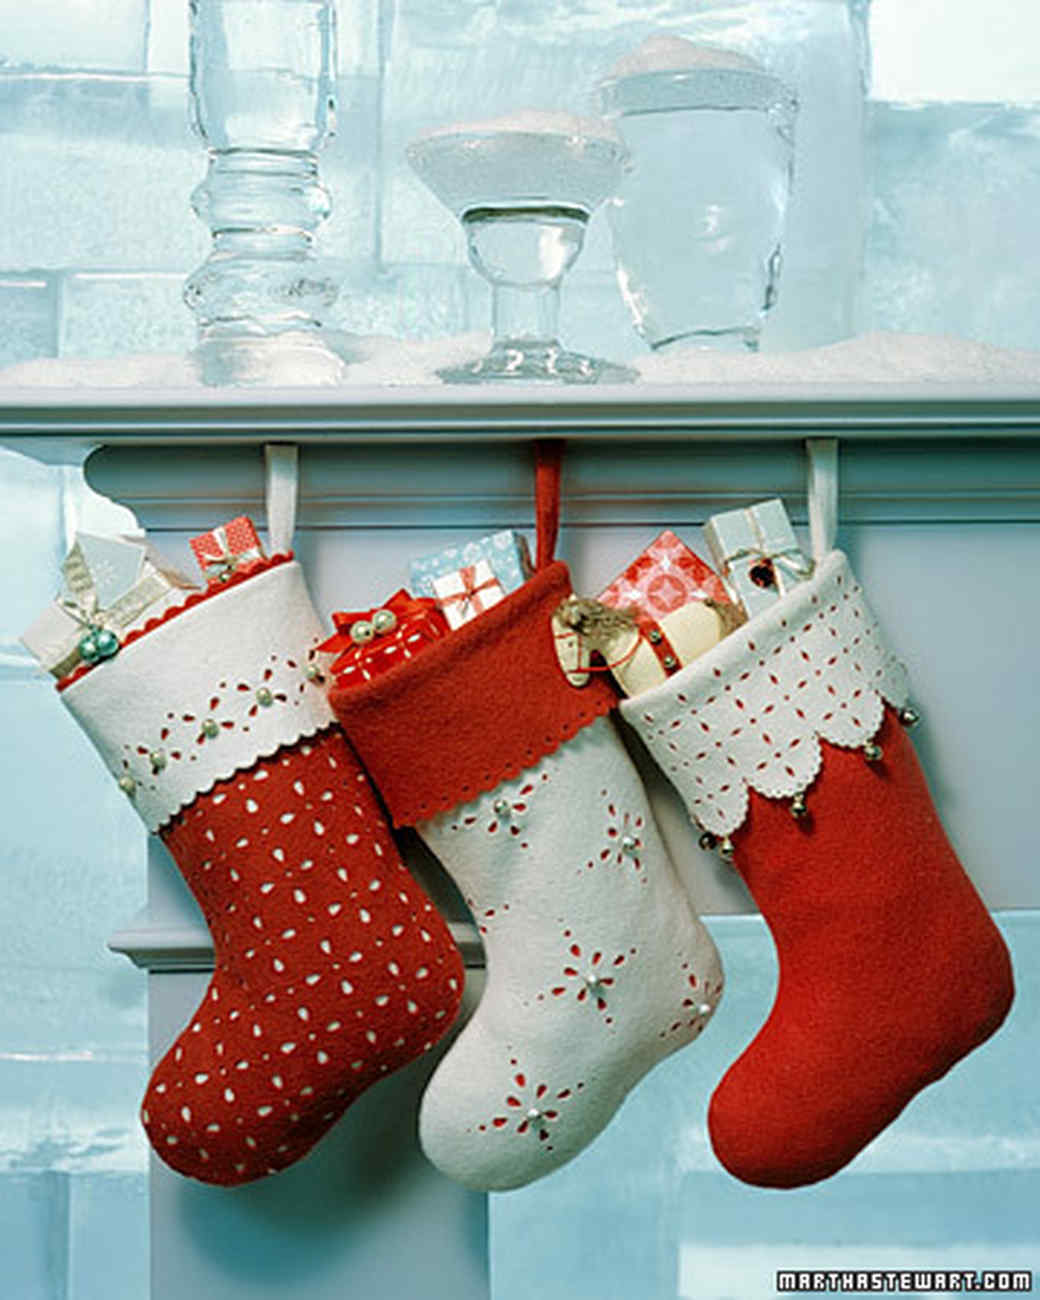 Handmade Christmas Stockings | Martha Stewart